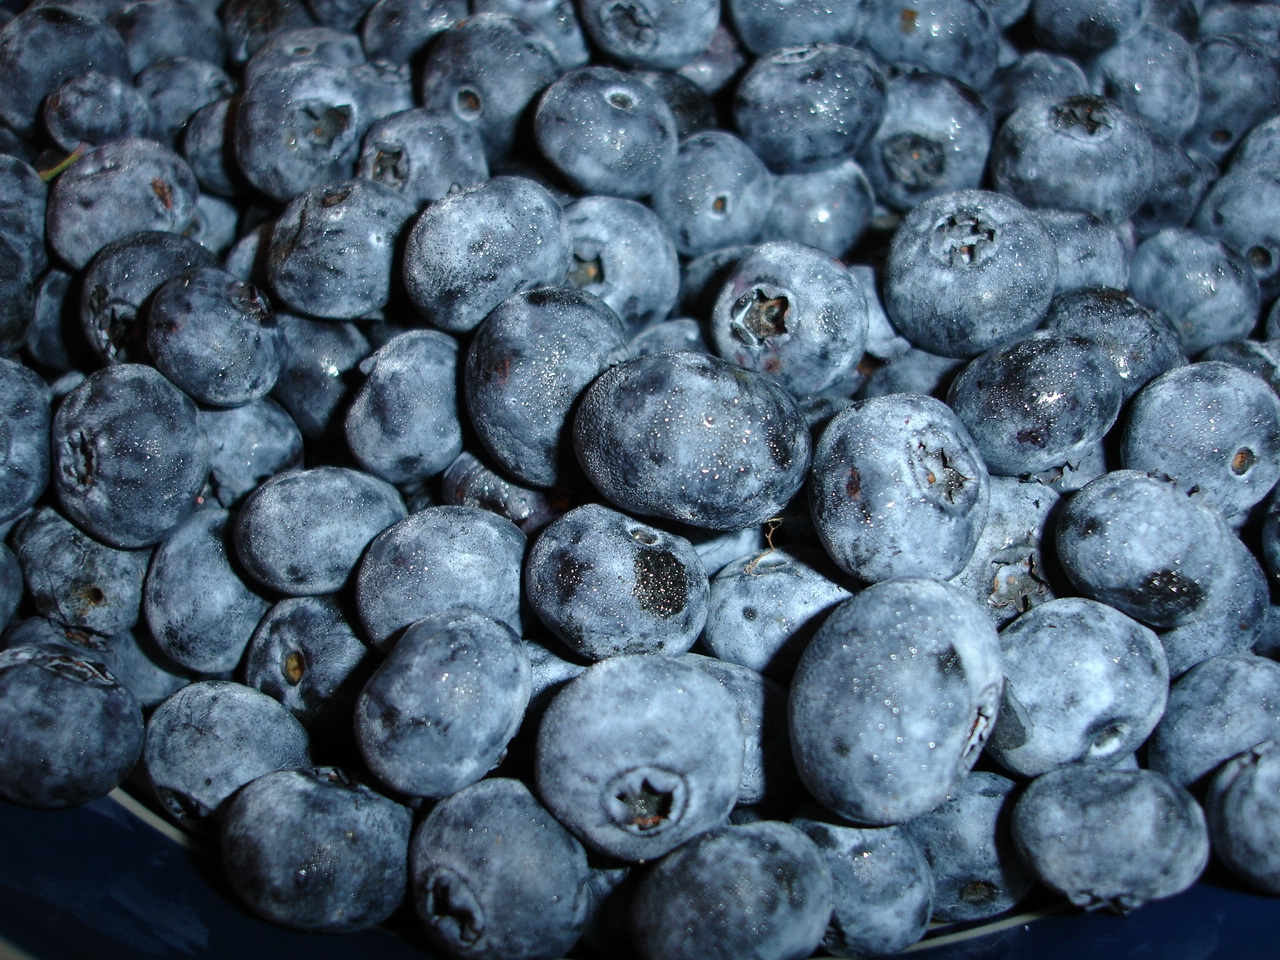 Fresh Michigan Blueberries at The White Rabbit Inn